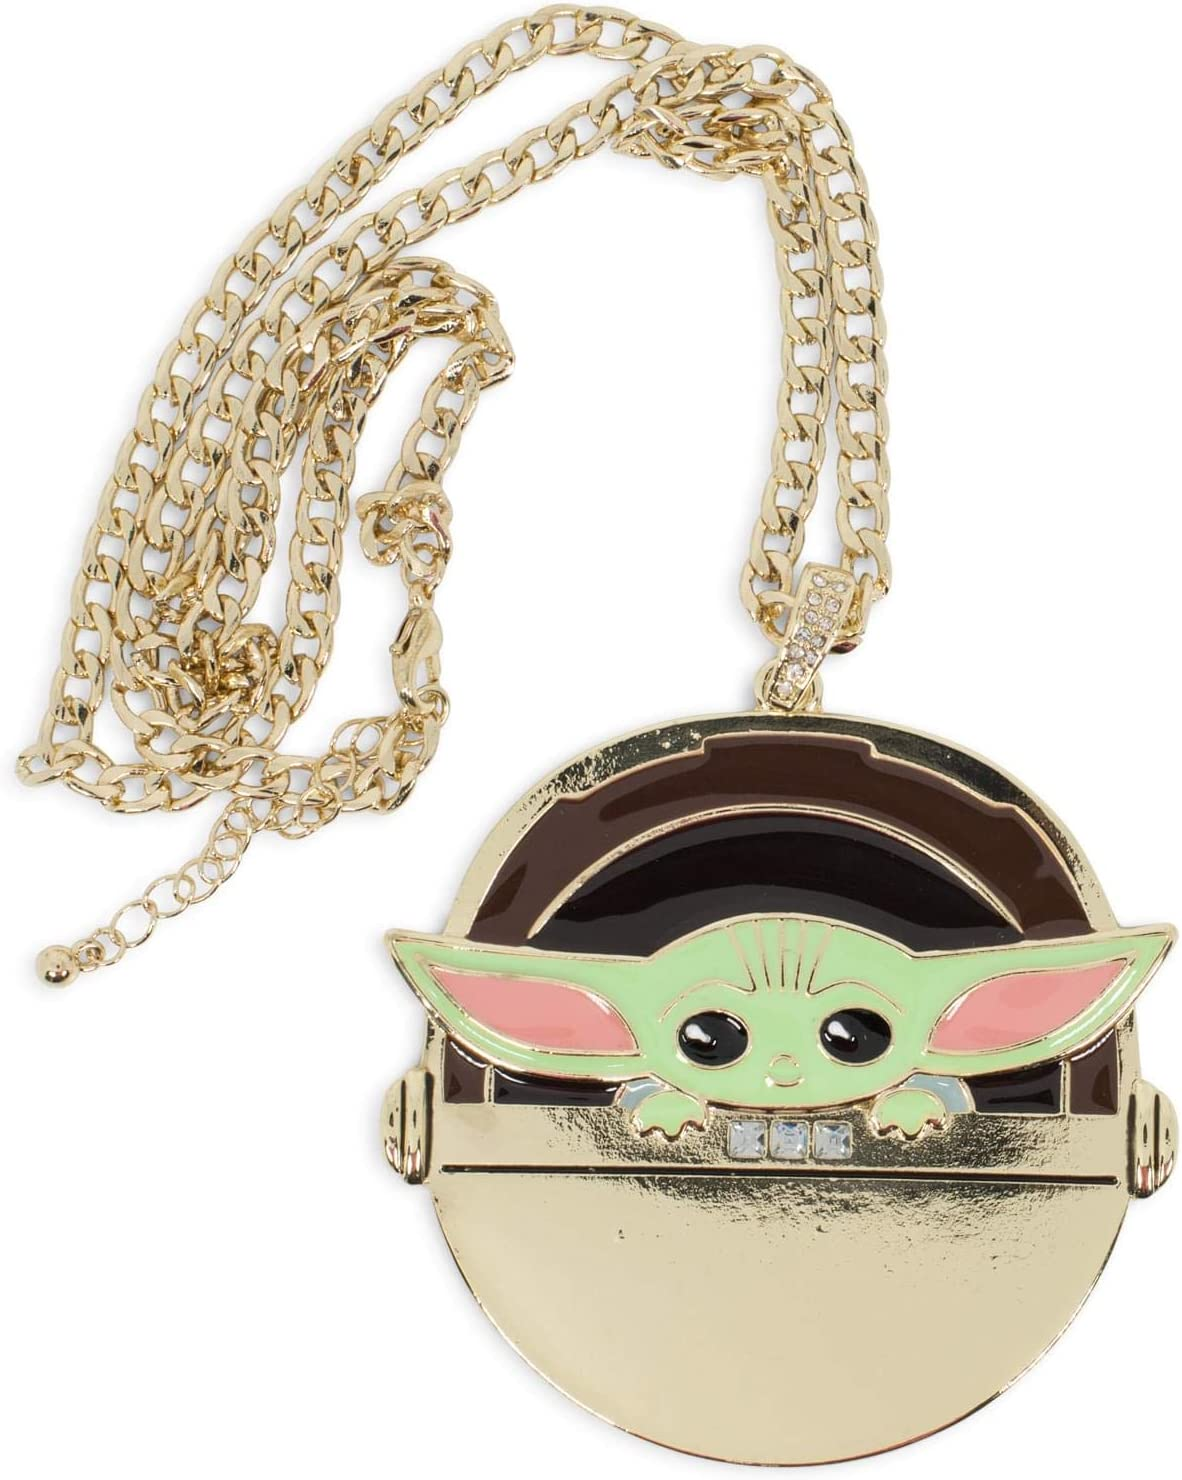 Toynk Star Wars The Mandalorian Baby Chain Carriage overseas in Shipping included Yoda Gold